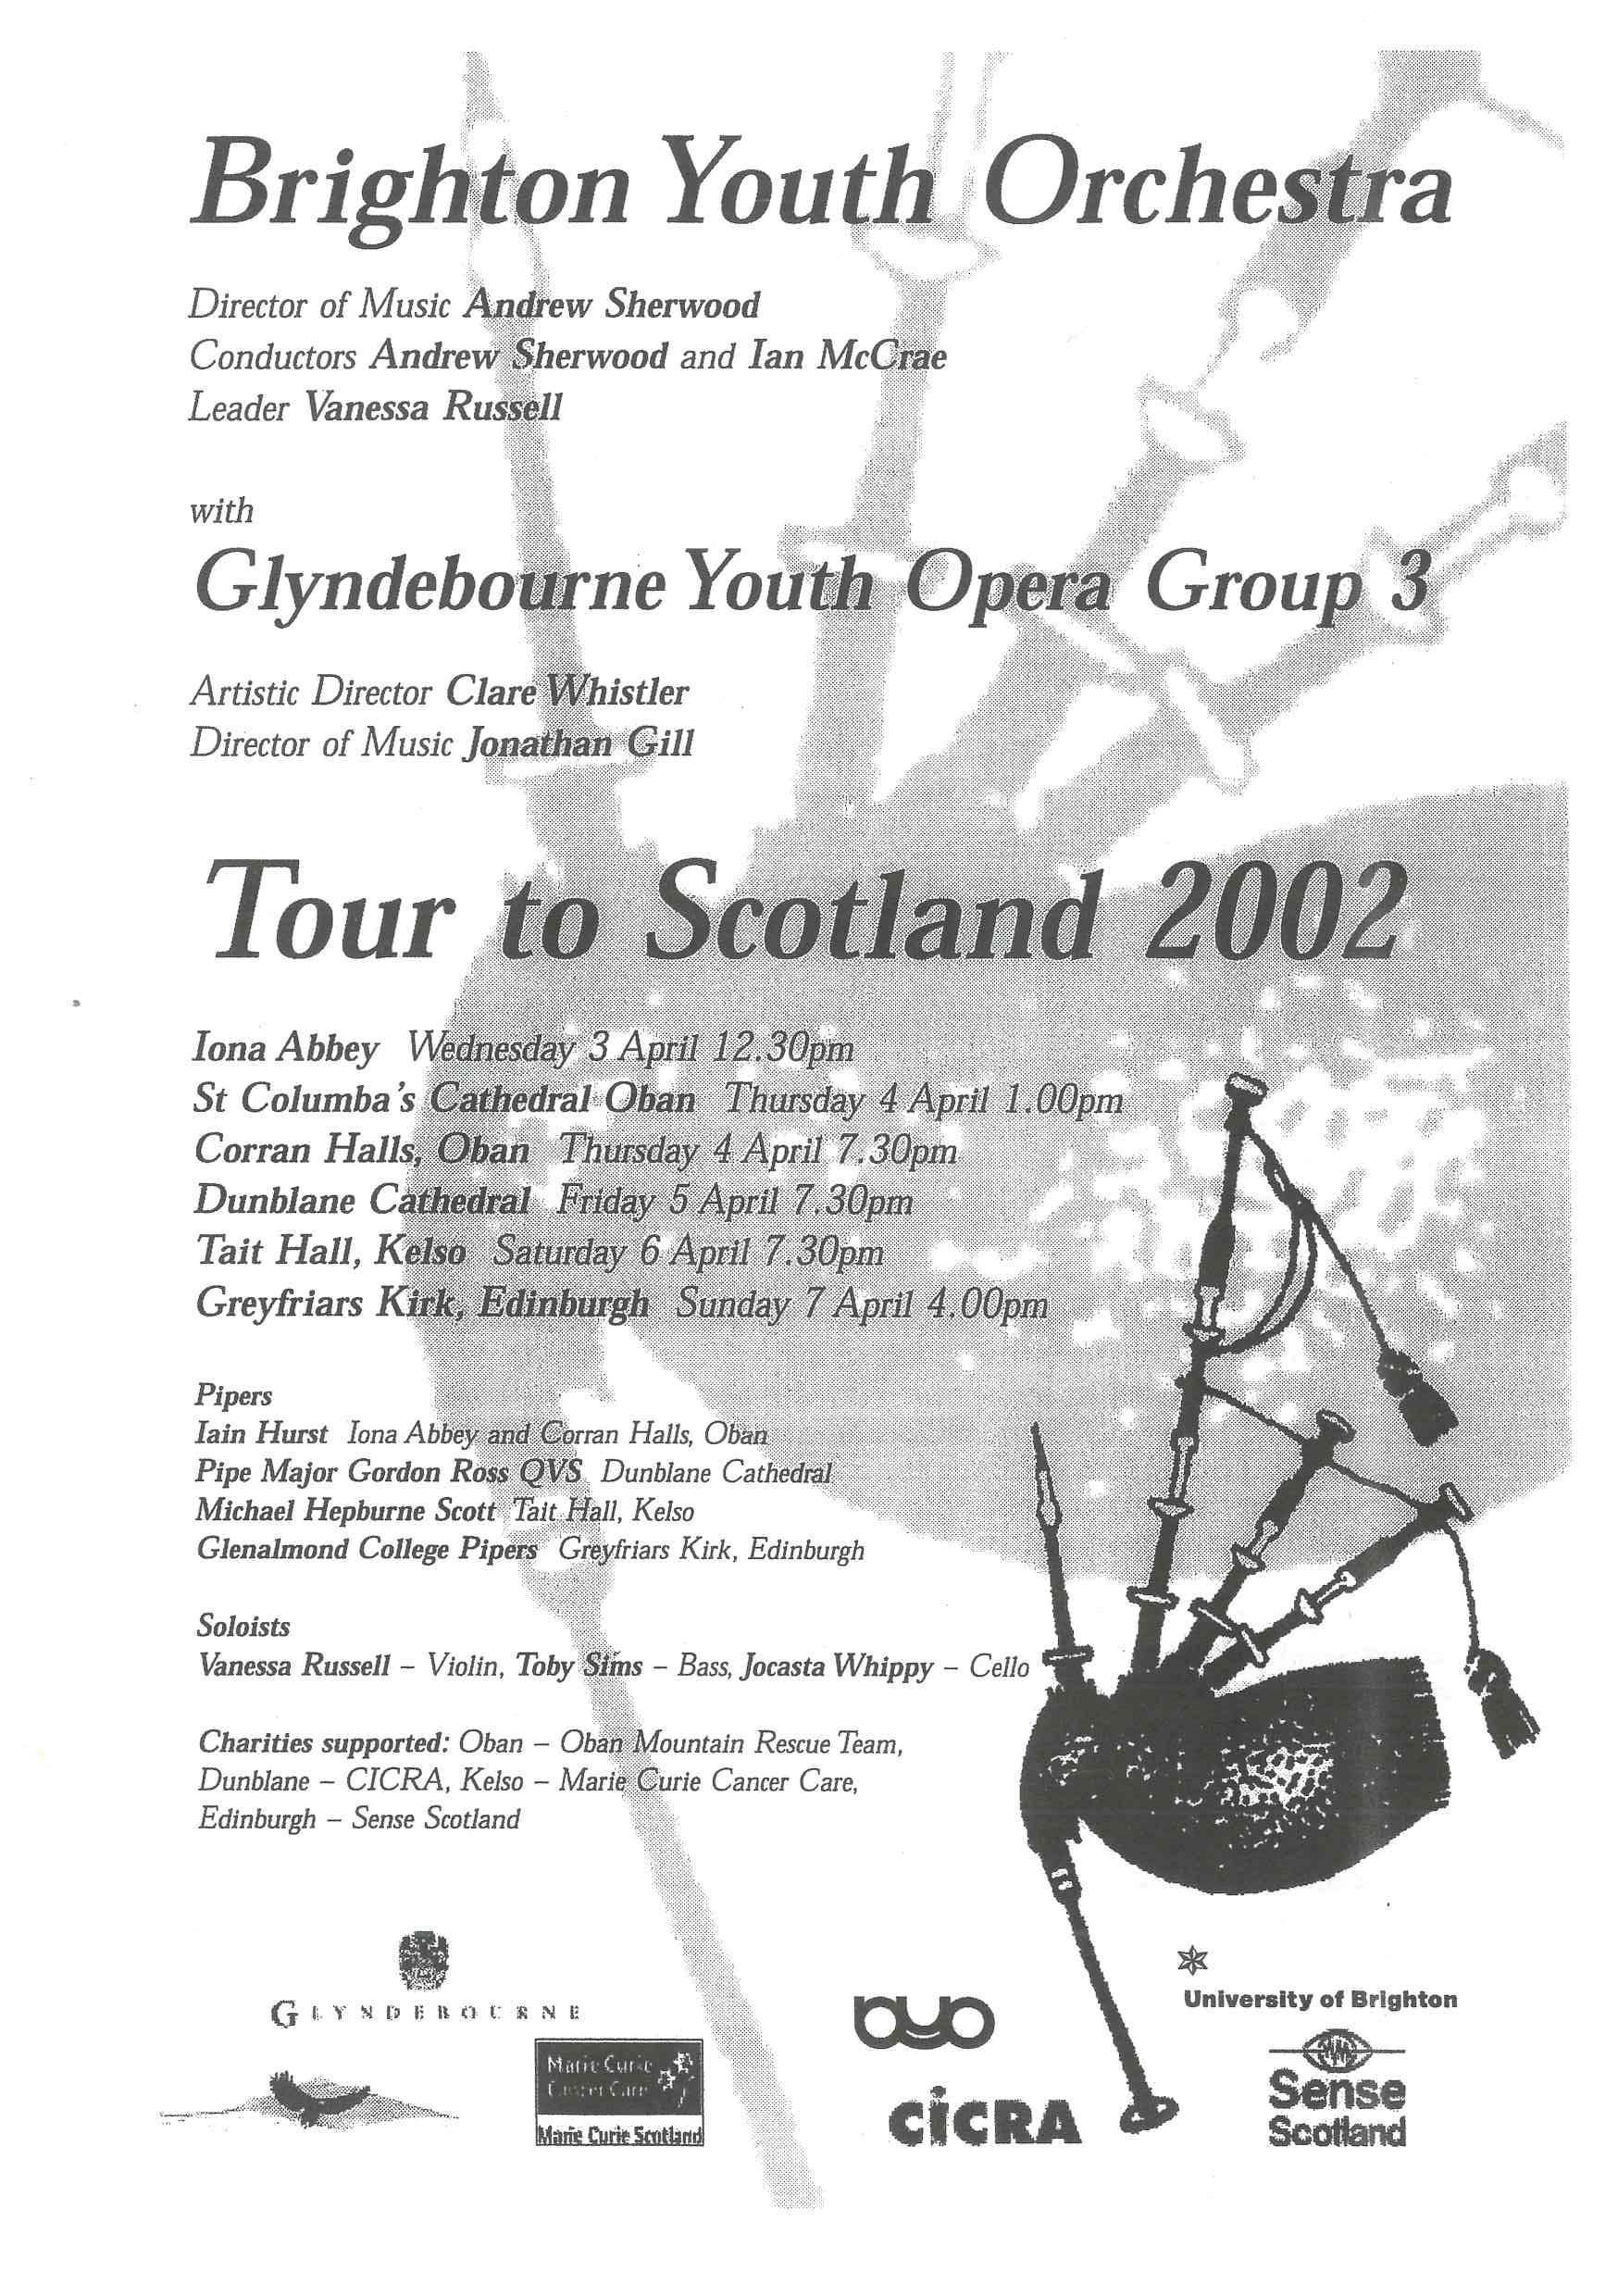 00384-BYO- Tour to Scotland 2002.jpg